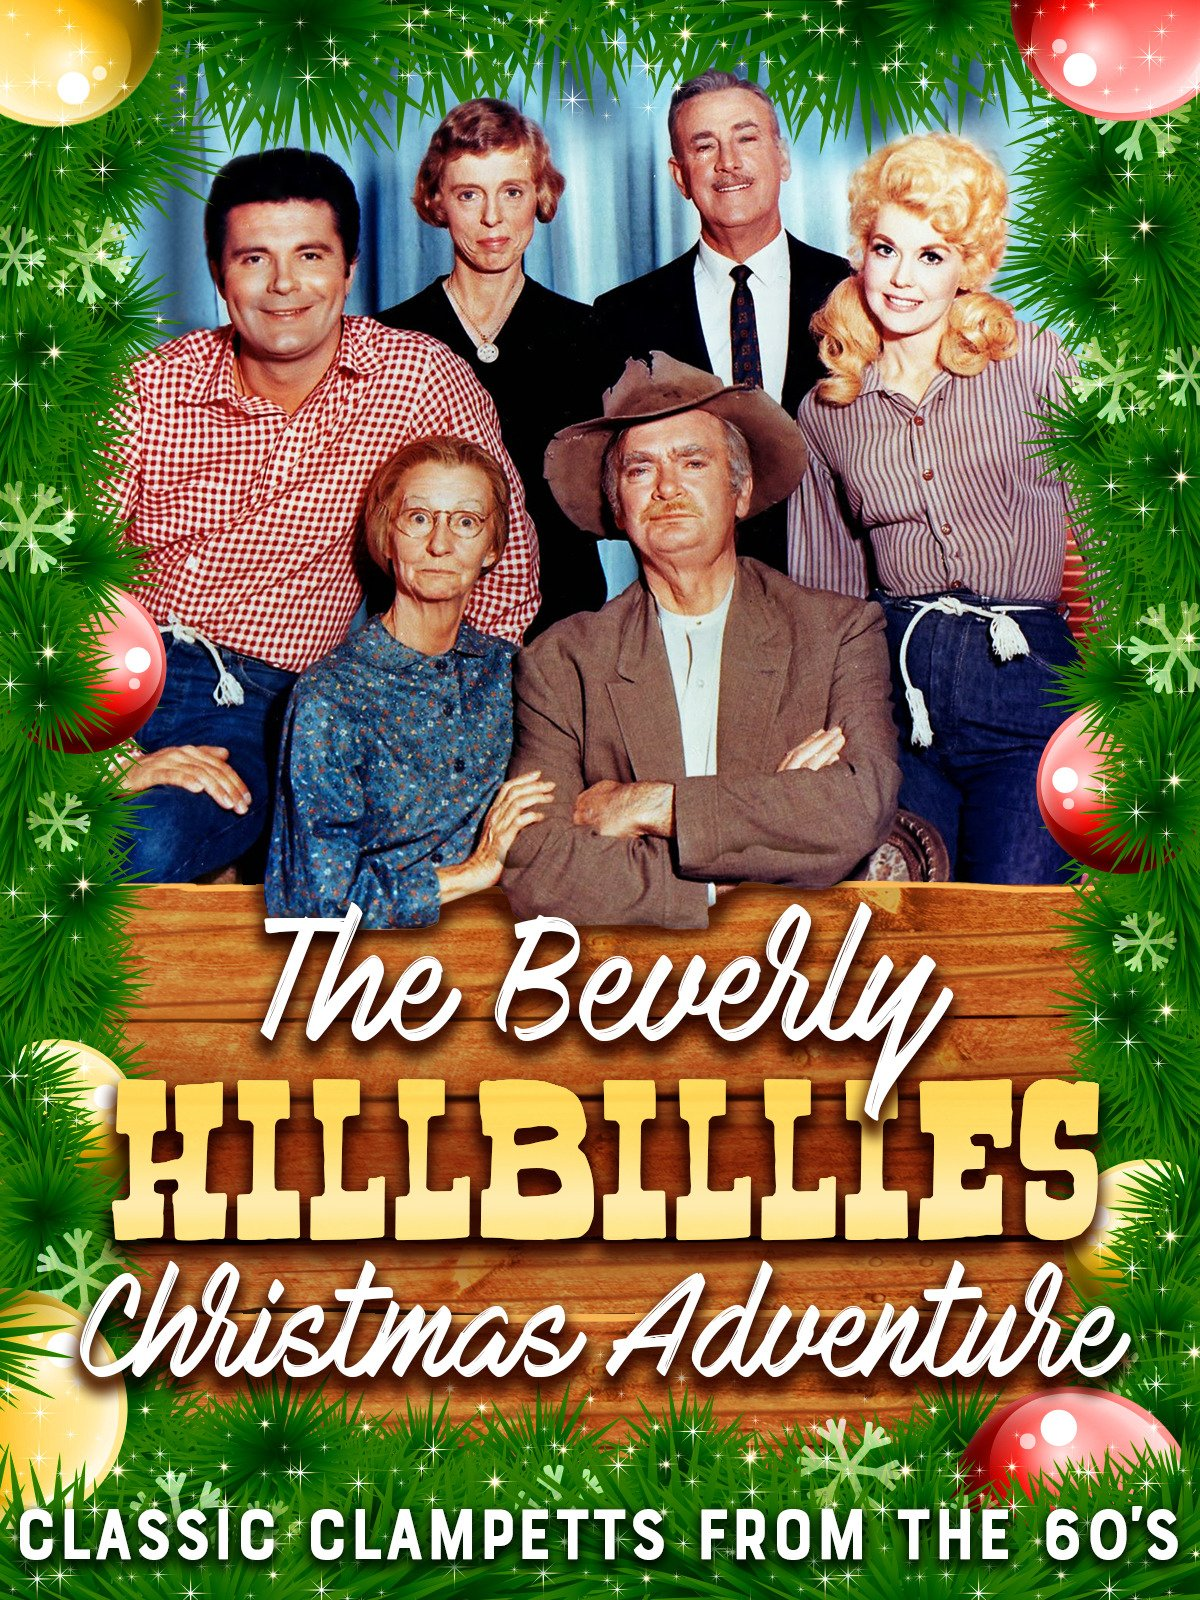 The Beverly Hillbillies Christmas Adventure